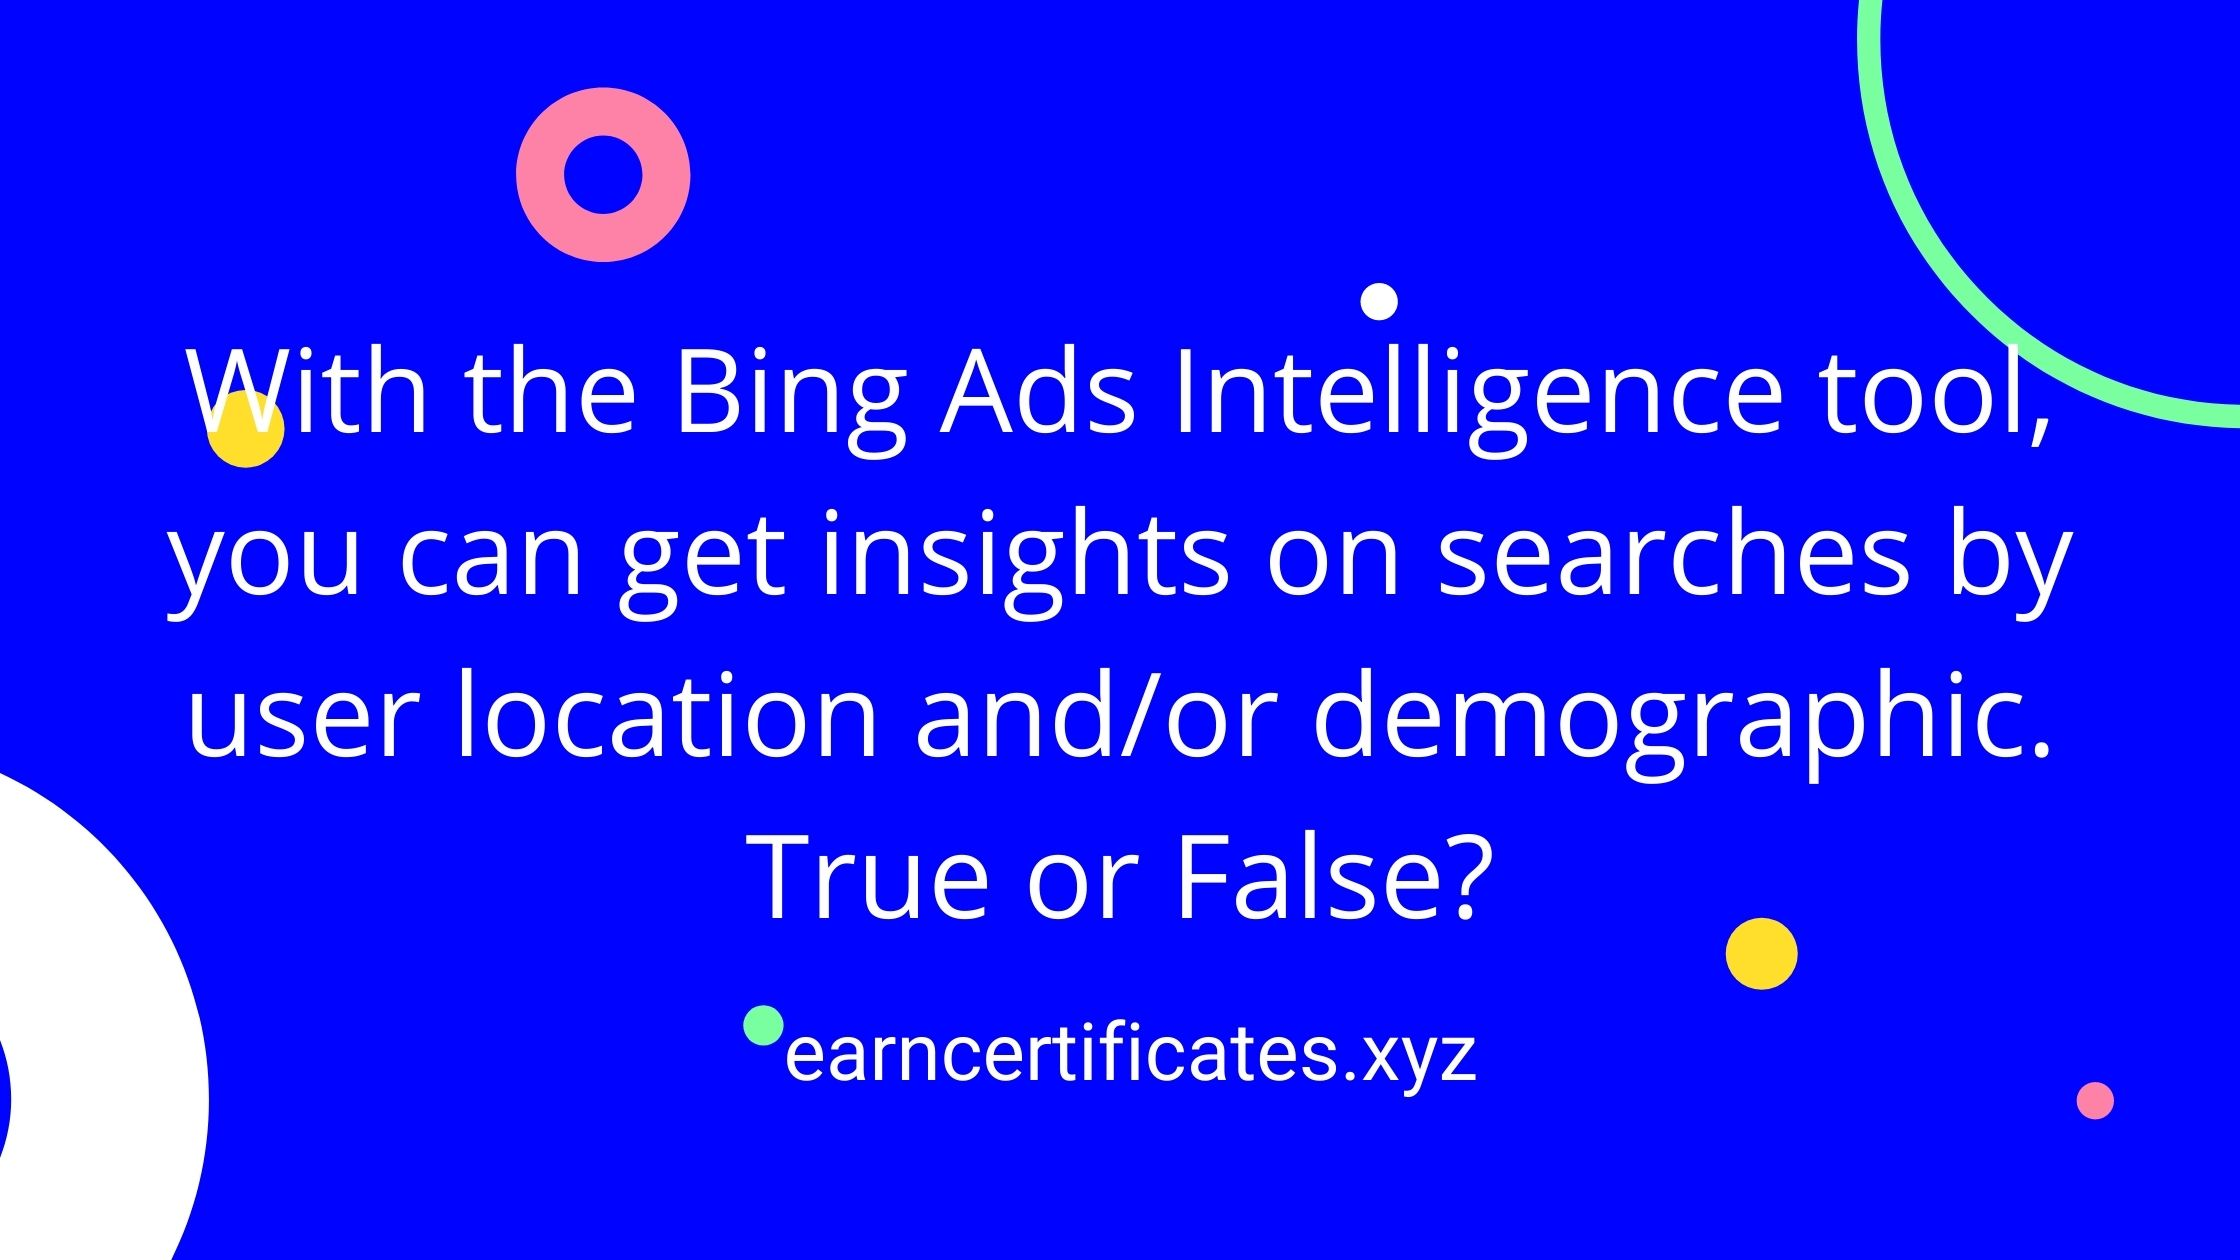 With the Bing Ads Intelligence tool, you can get insights on searches by user location and/or demographic. True or False?